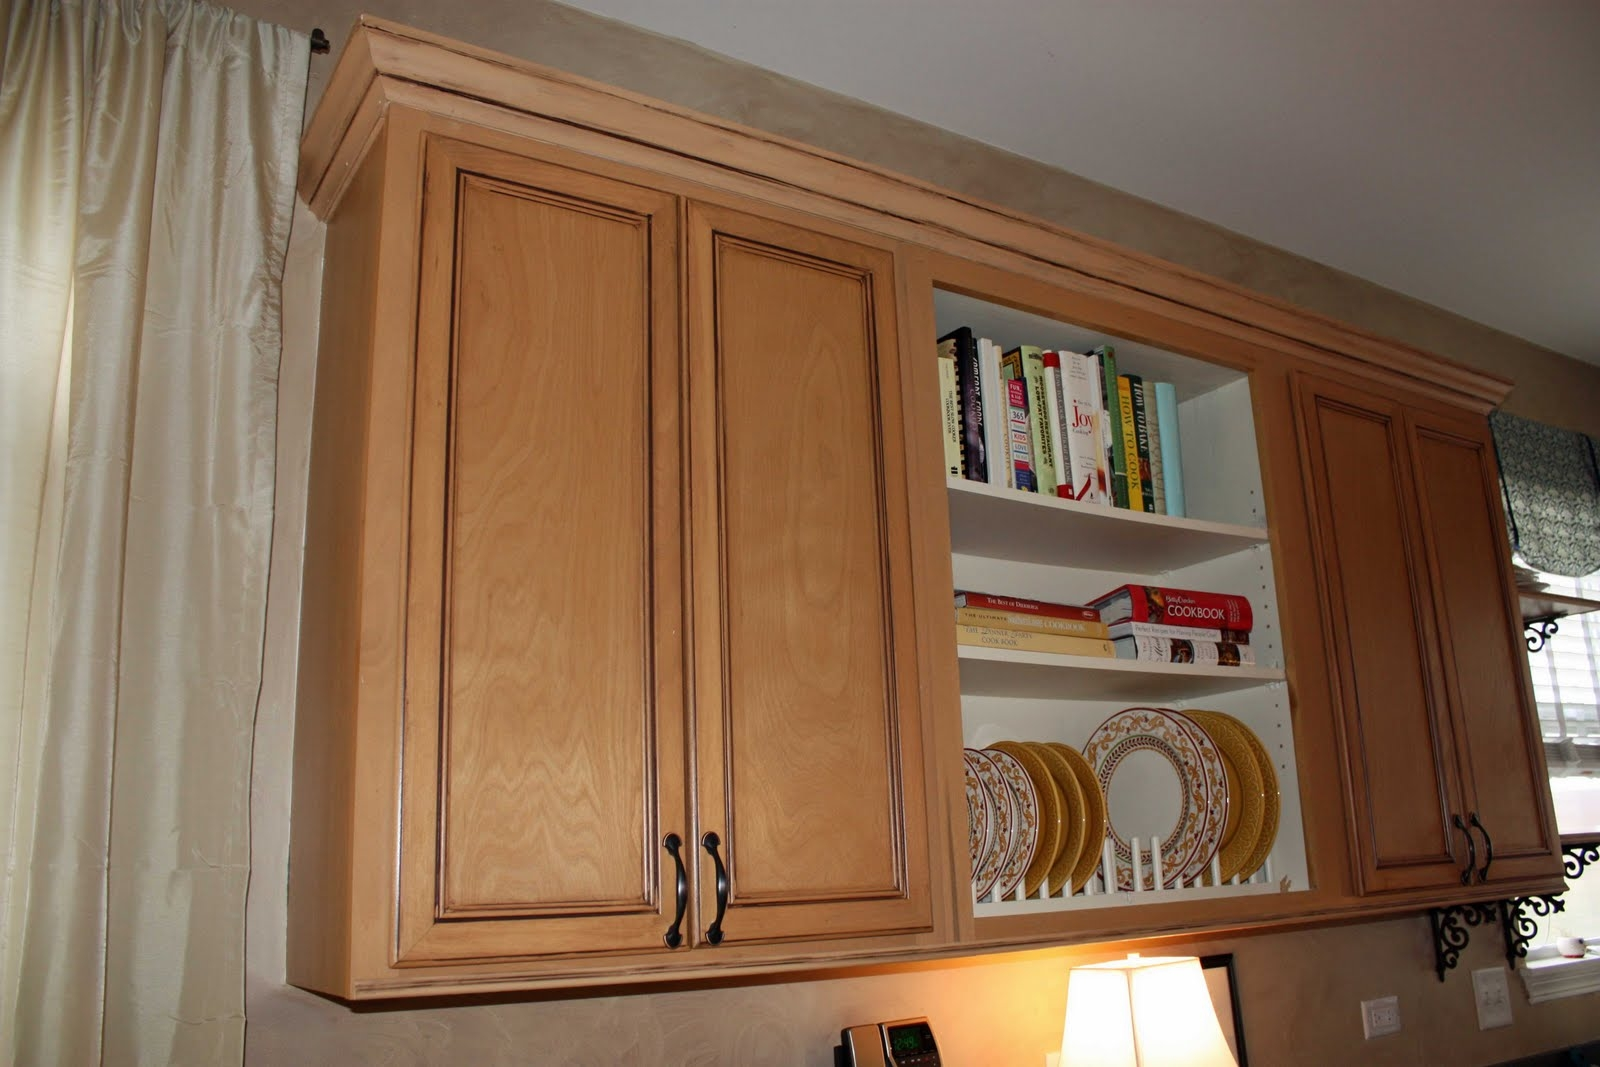 Decorative Molding For Kitchen Cabinet Doors1600 X 1067